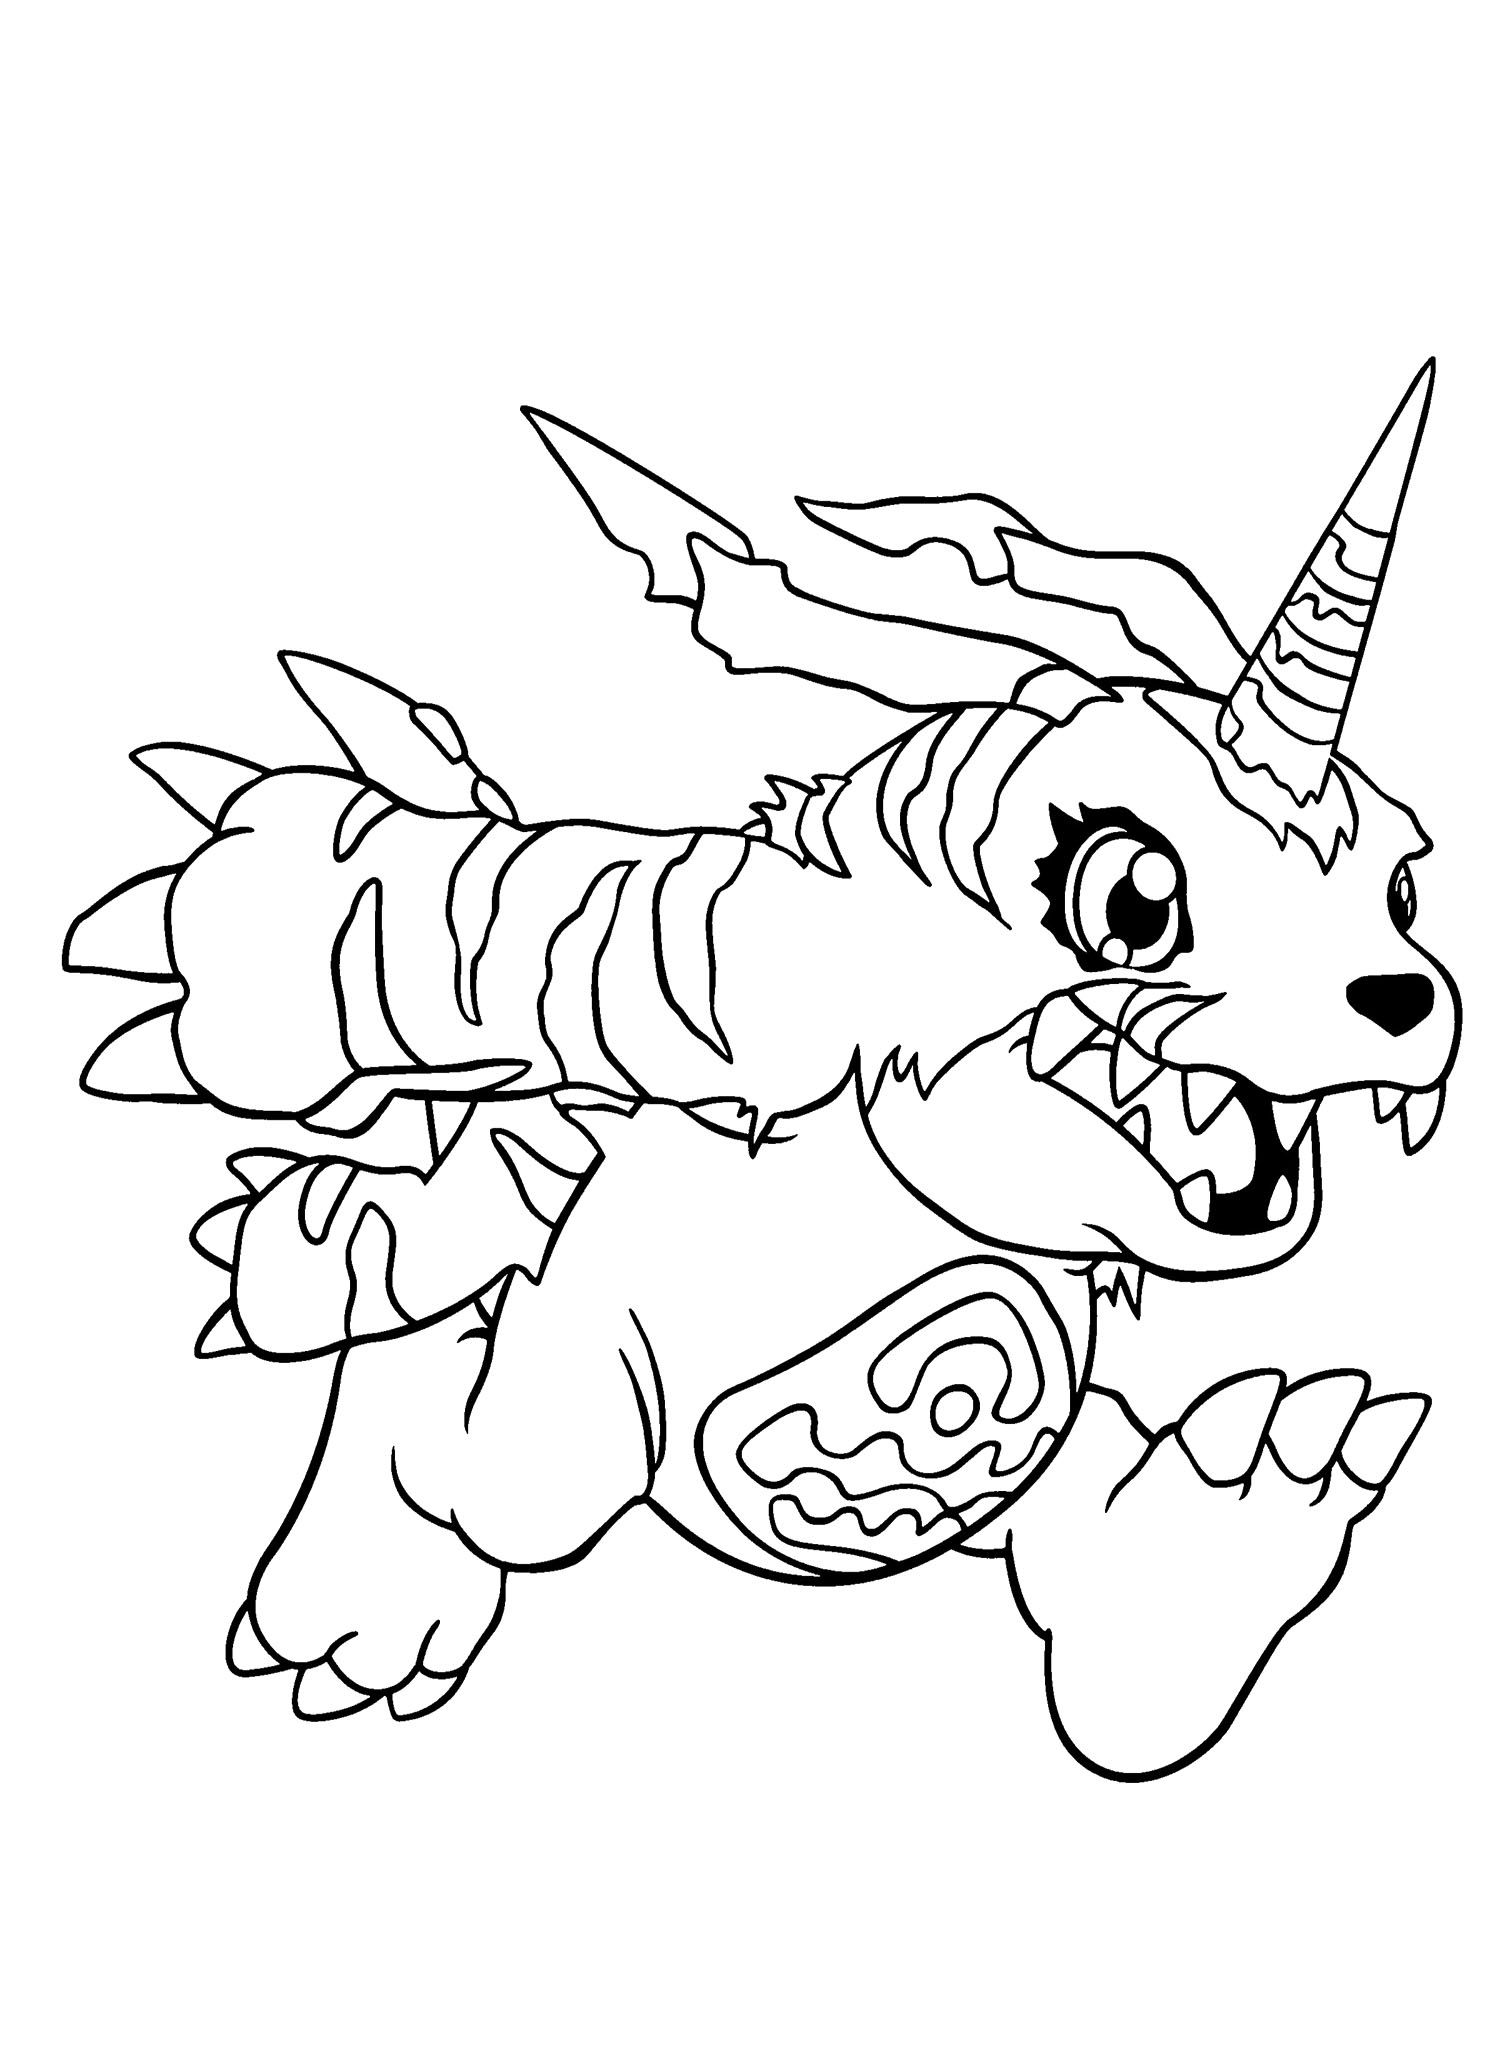 gabumon running coloring page digimon coloring page pinterest